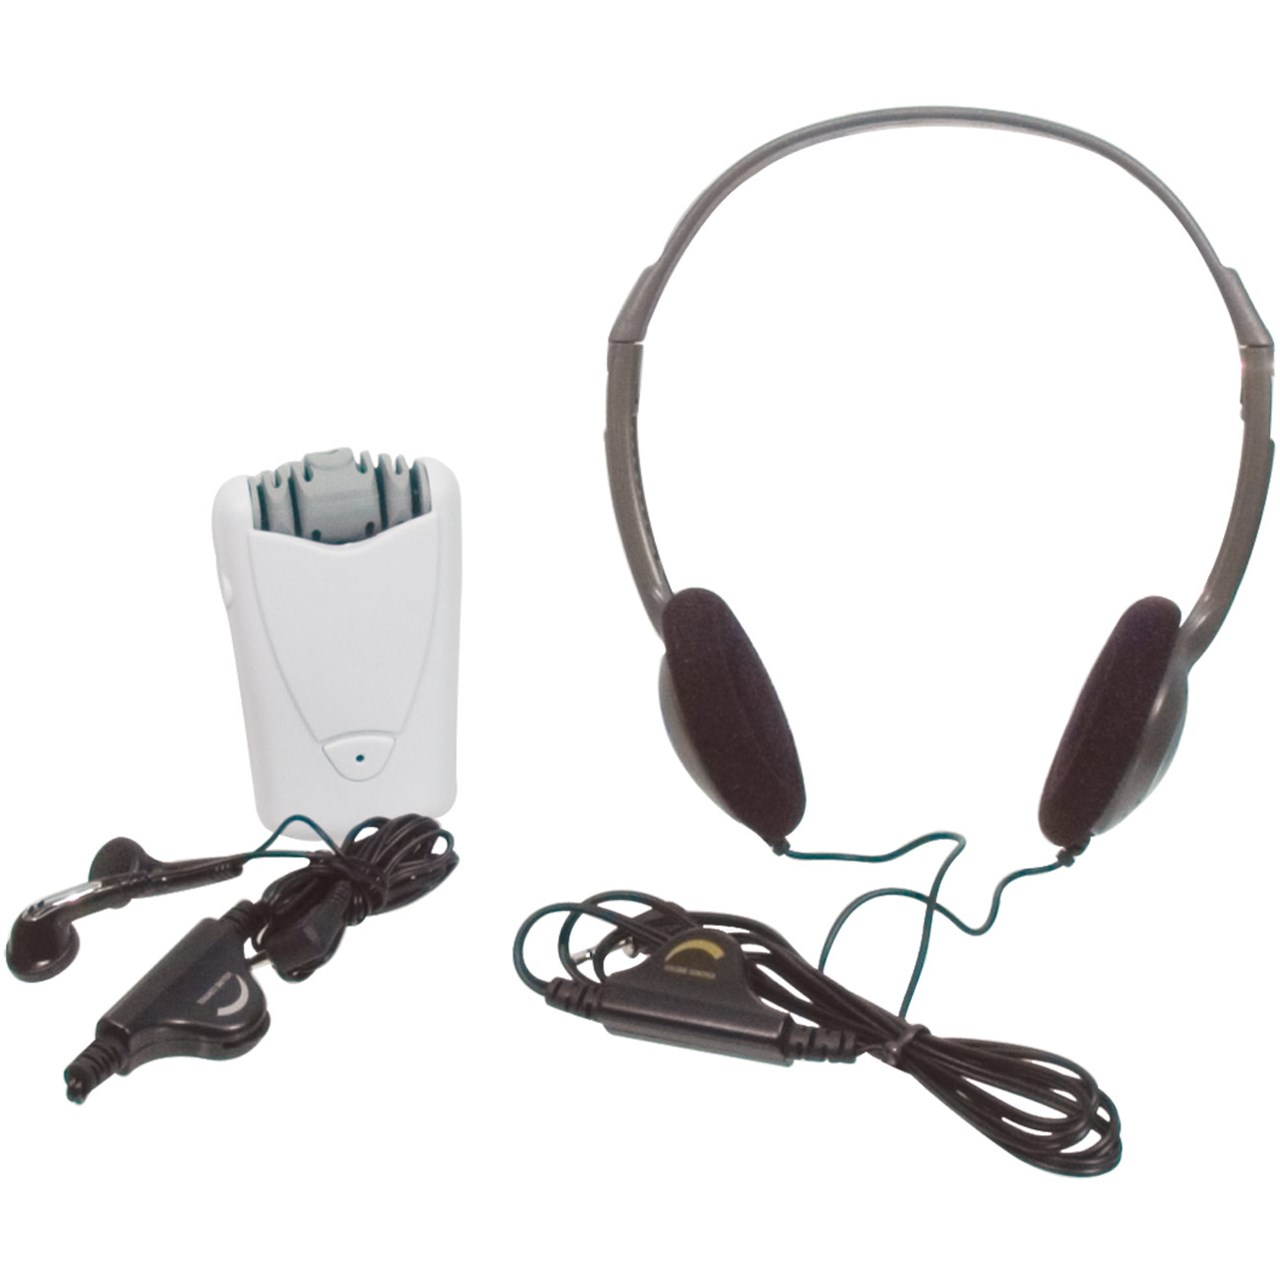 Hearing Aid Headphones Review